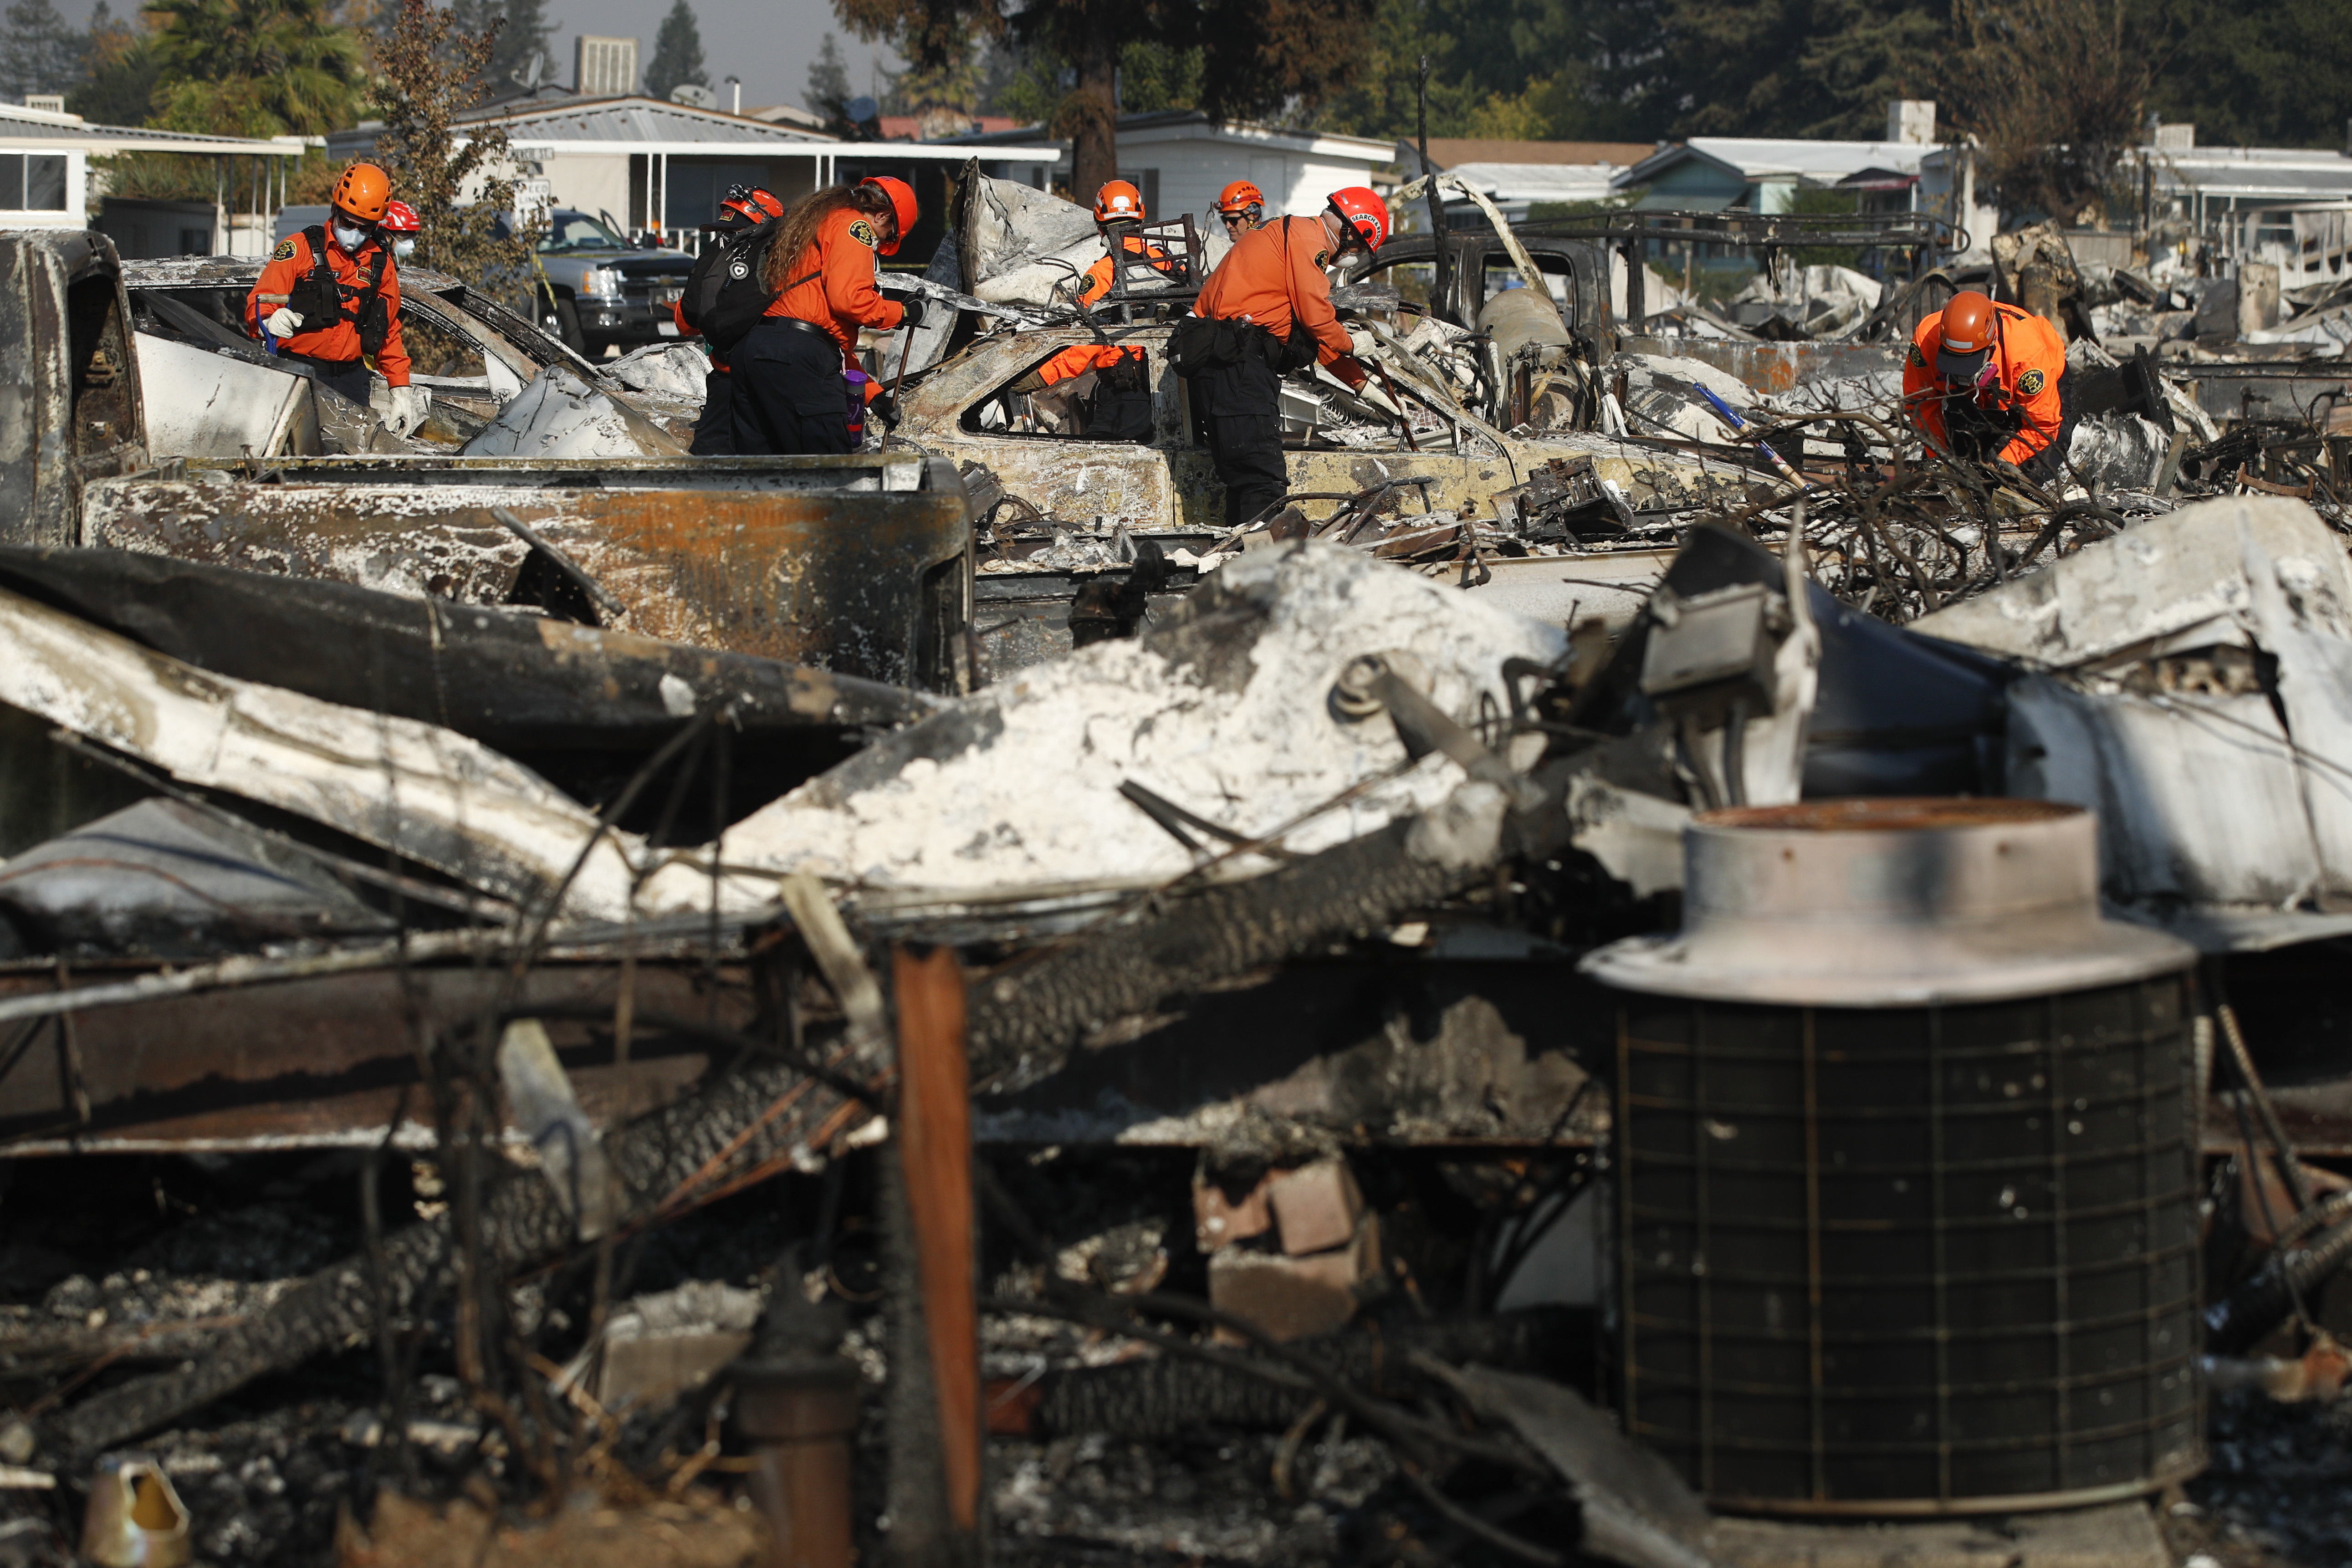 <div class='meta'><div class='origin-logo' data-origin='none'></div><span class='caption-text' data-credit='Jae C. Hong/AP Photo'>Members of a search and rescue team search through the rubble of mobile homes destroyed by a wildfire Monday, Oct. 16, 2017, in Santa Rosa, Calif.</span></div>